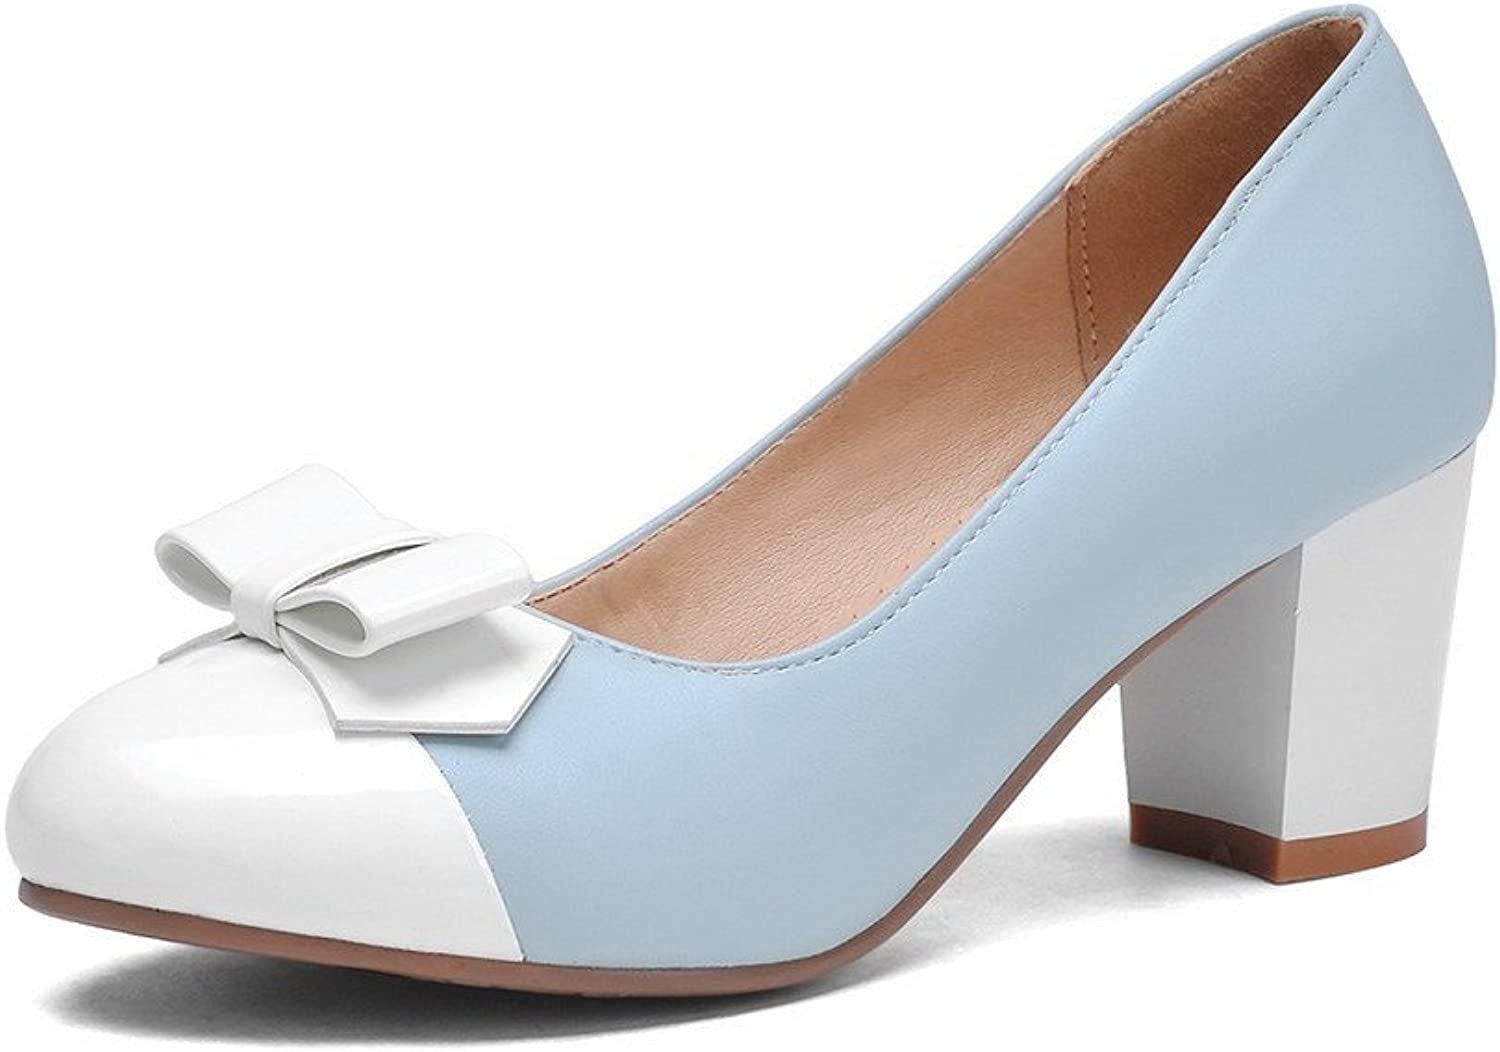 AmoonyFashion Women's Round Closed Toe Kitten Heels Assorted color Pull On Pumps-shoes